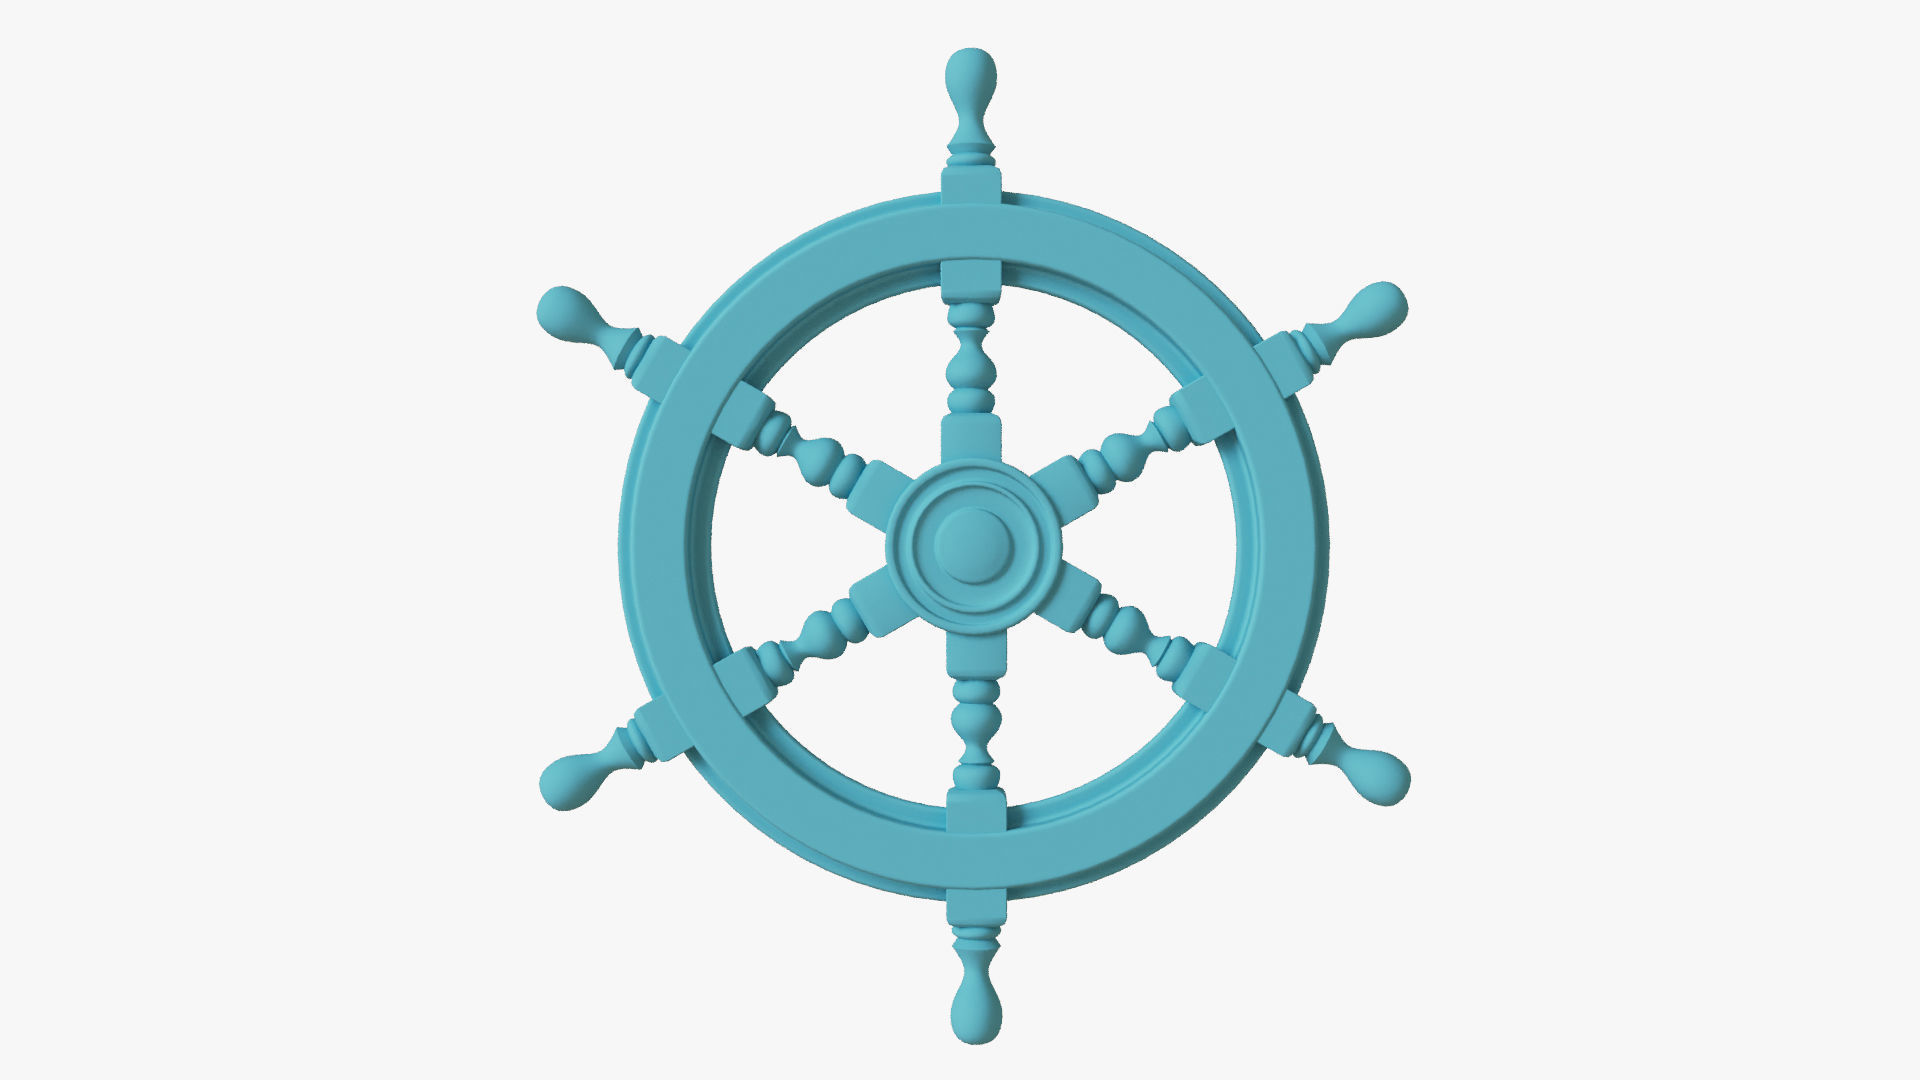 Naval steering wheel